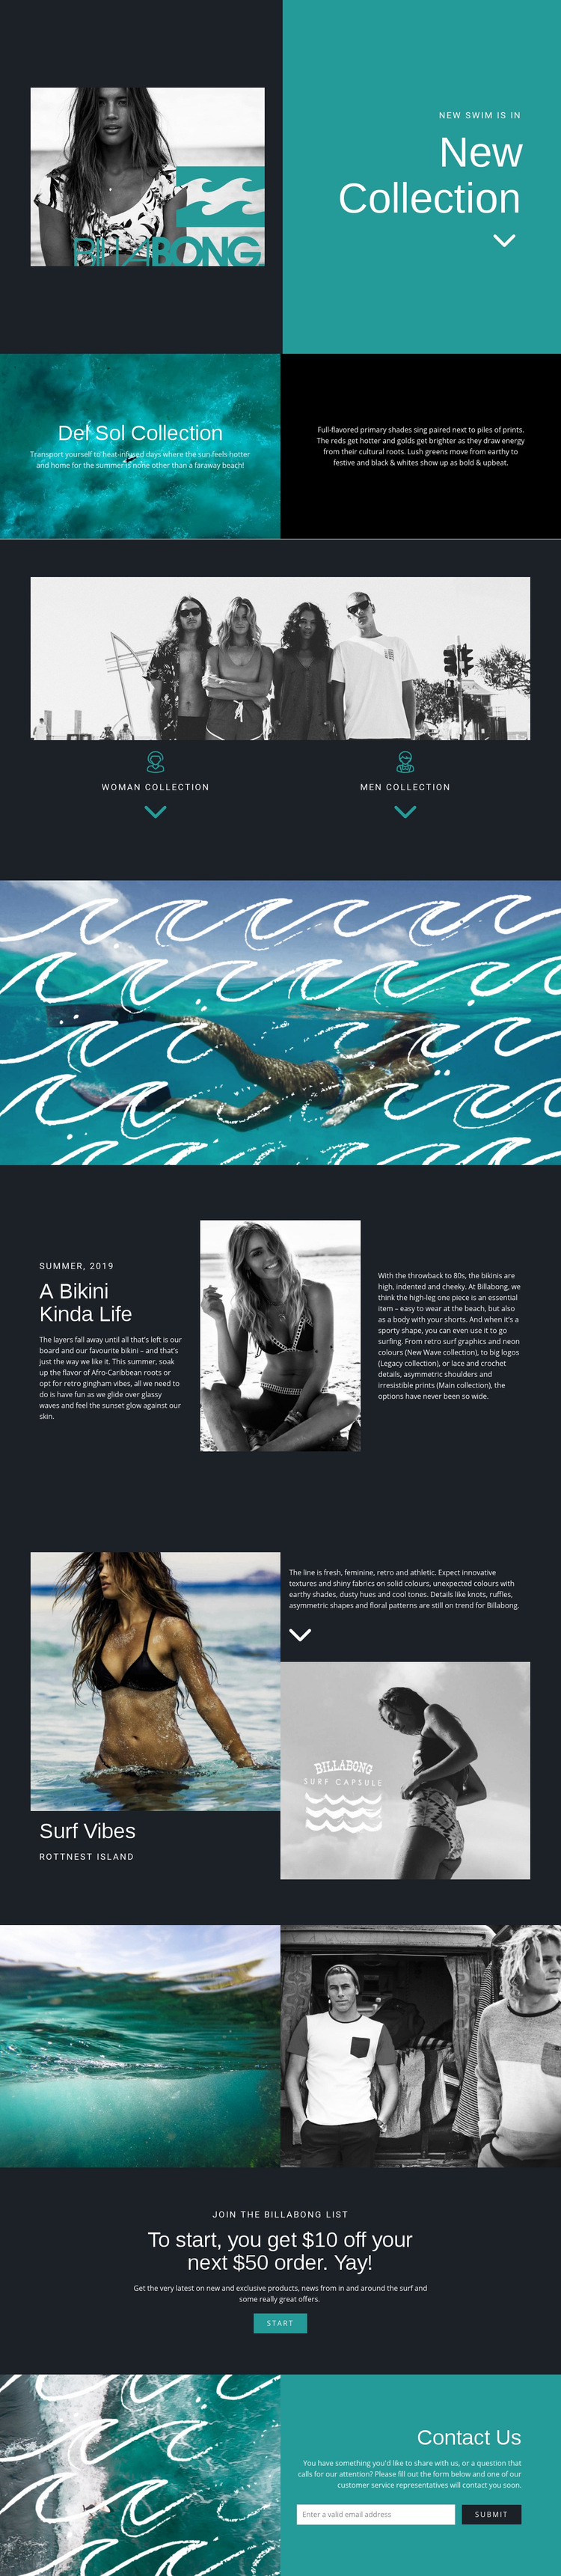 New collection of swimwear Web Page Design